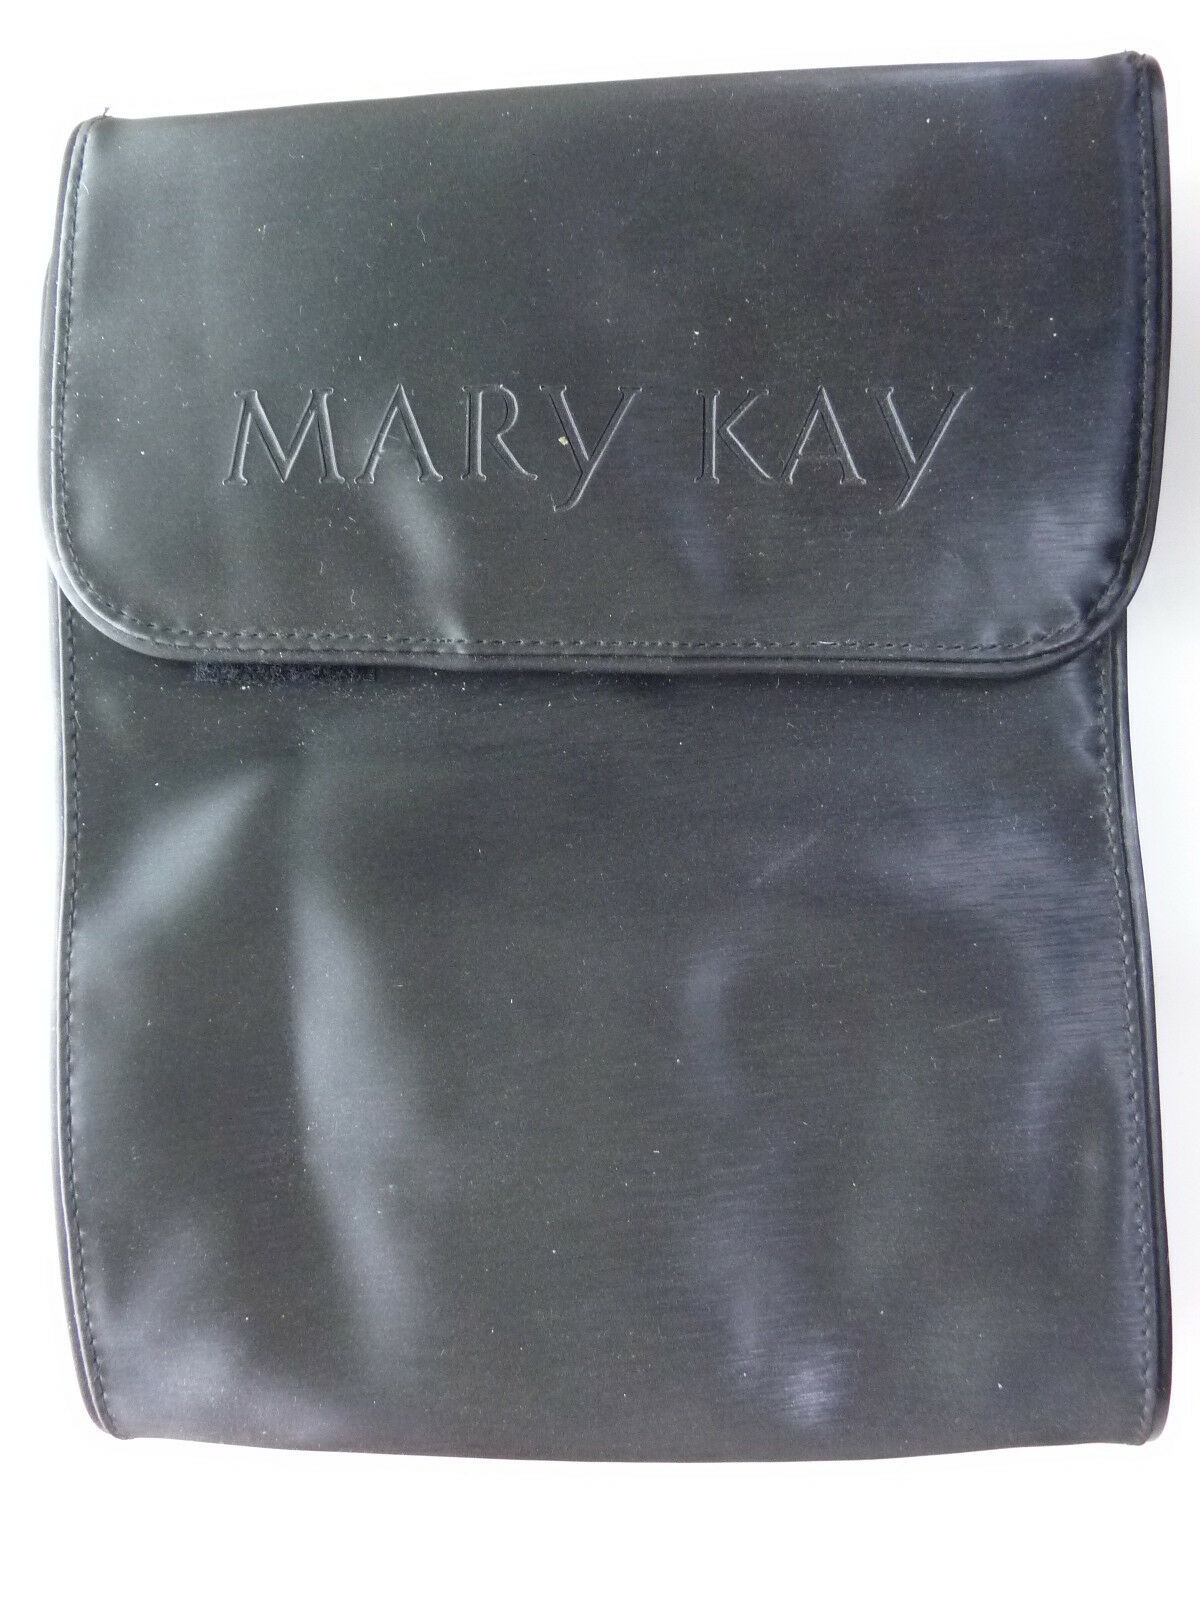 Primary image for Mary Kay Hanging Makeup Bag Removable Clear Pouches